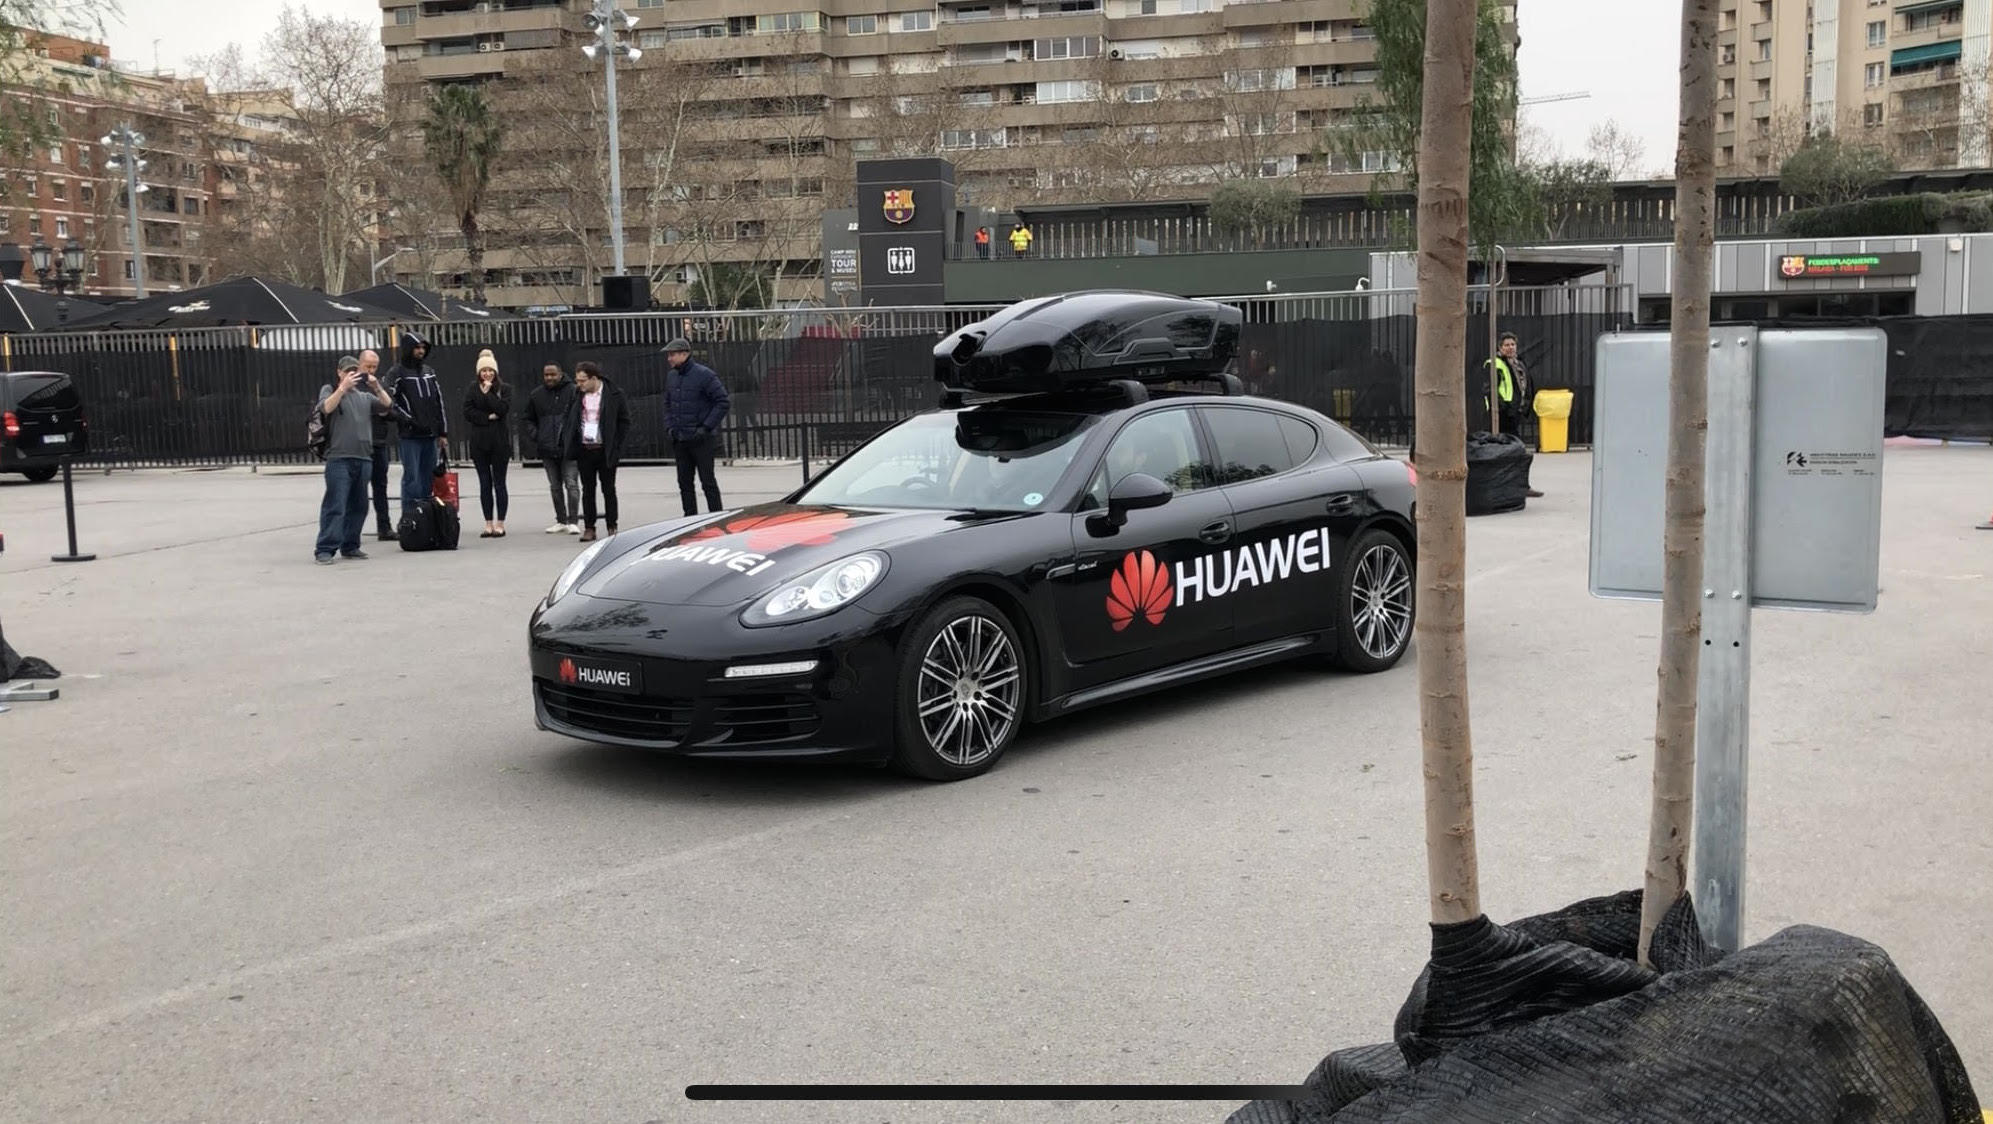 Porsche Panamera decked out in Huawei gear.